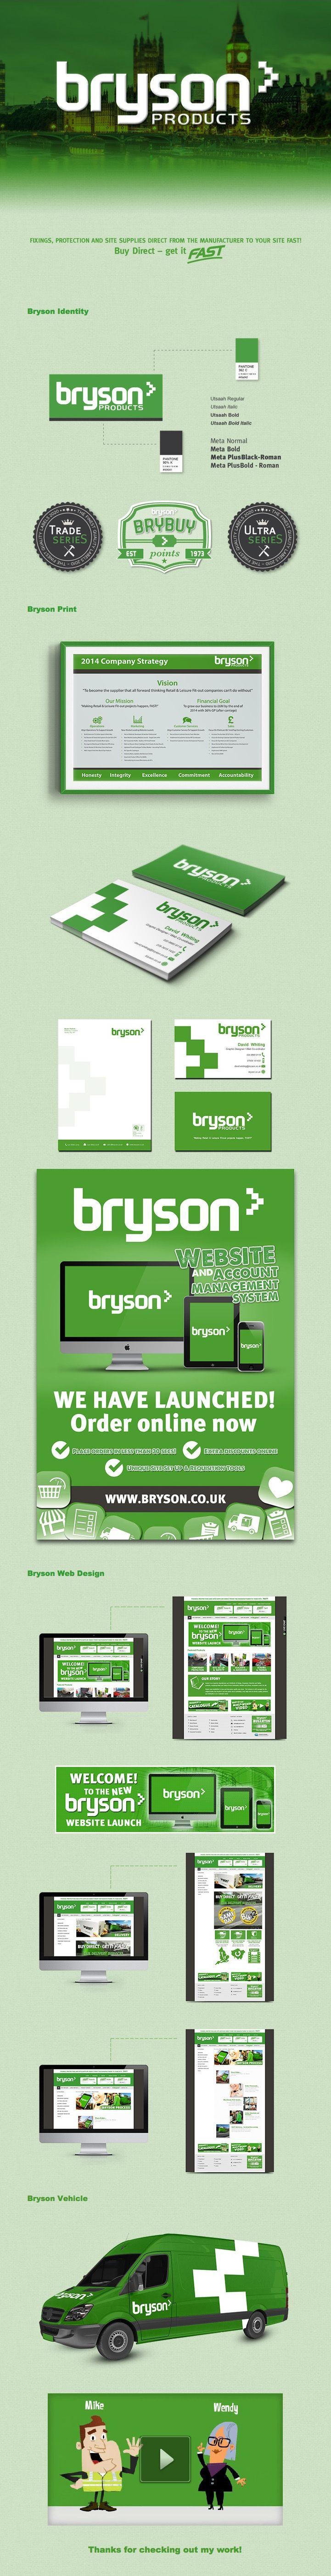 Bryson Products - Graphic Design #Identity #Branding